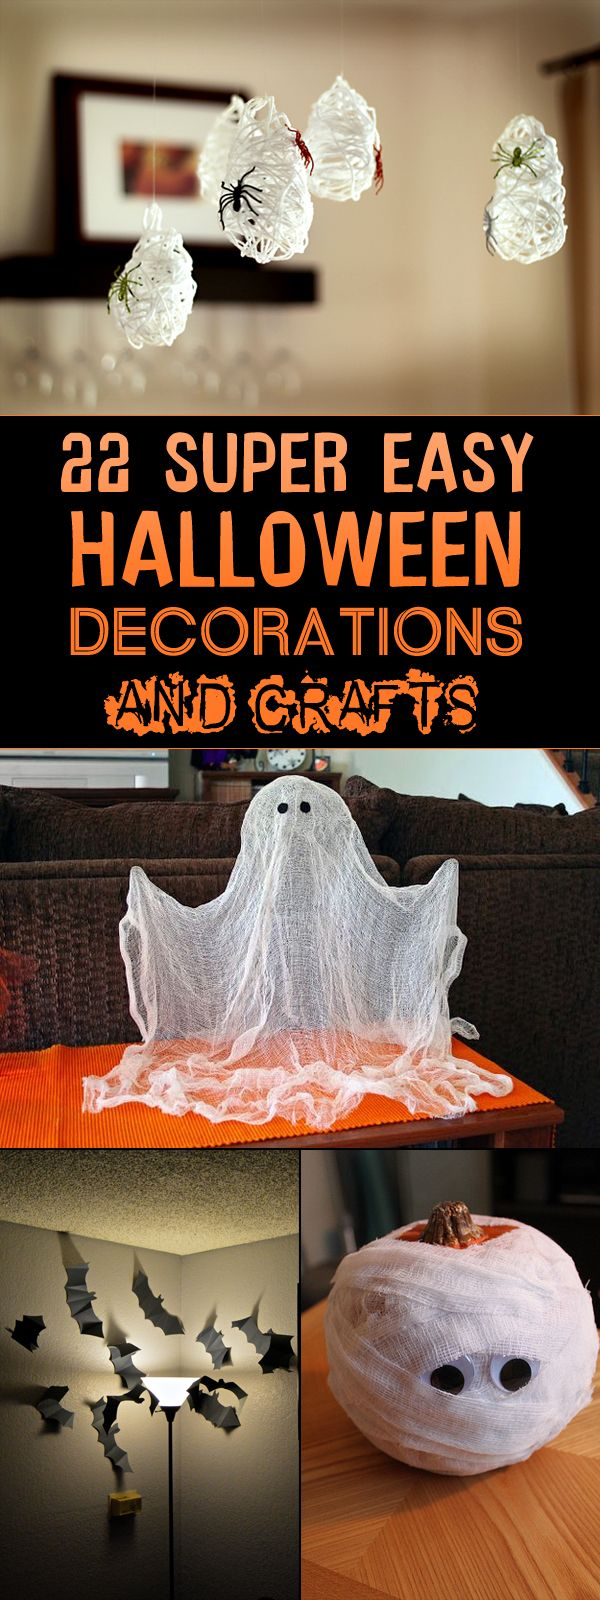 22 Super Easy Halloween Decorations and Crafts